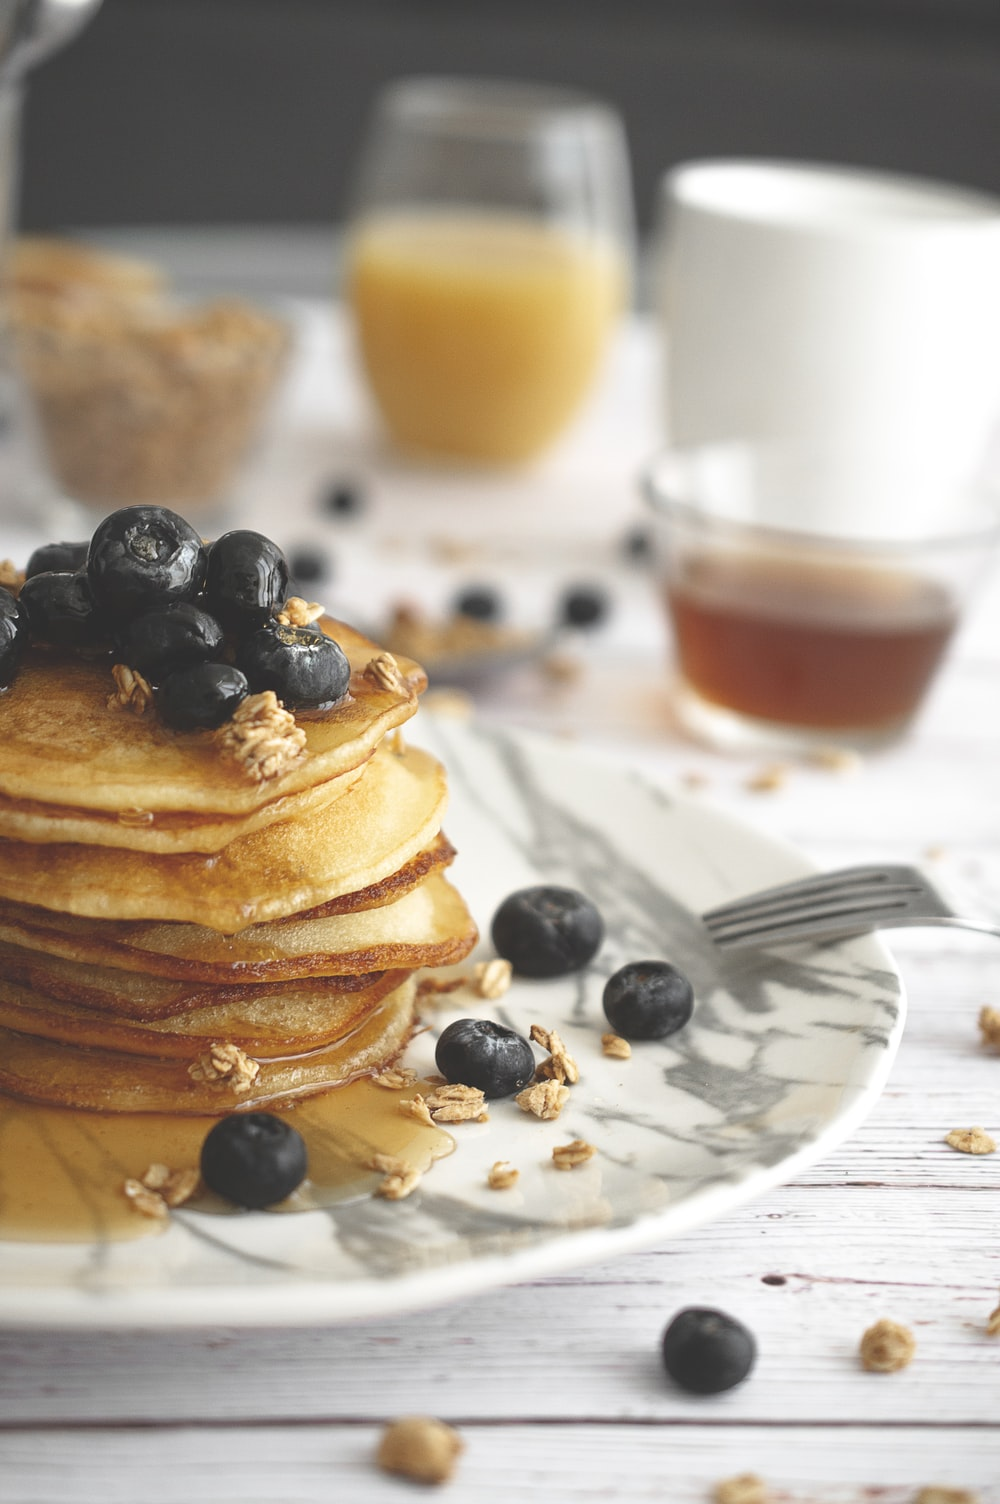 hot cakes and foods on white table